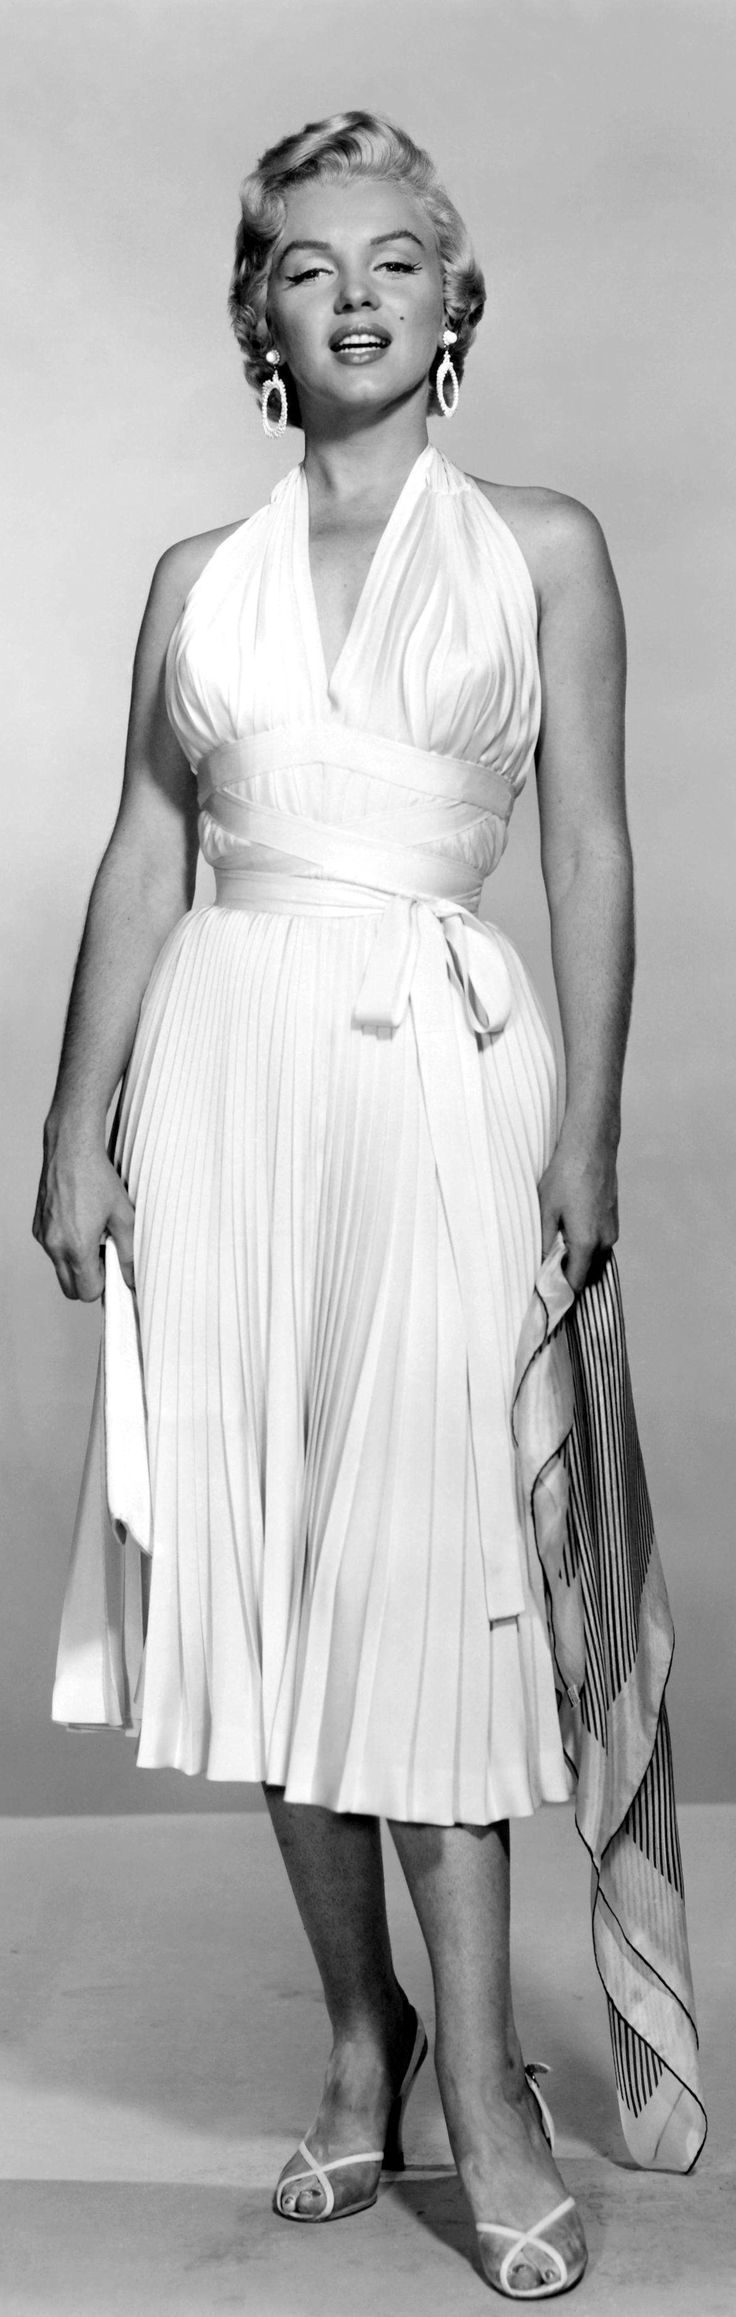 "Marilyn Monroe in an iconic white dress from ""The Seven Year Itch,"" 1955."